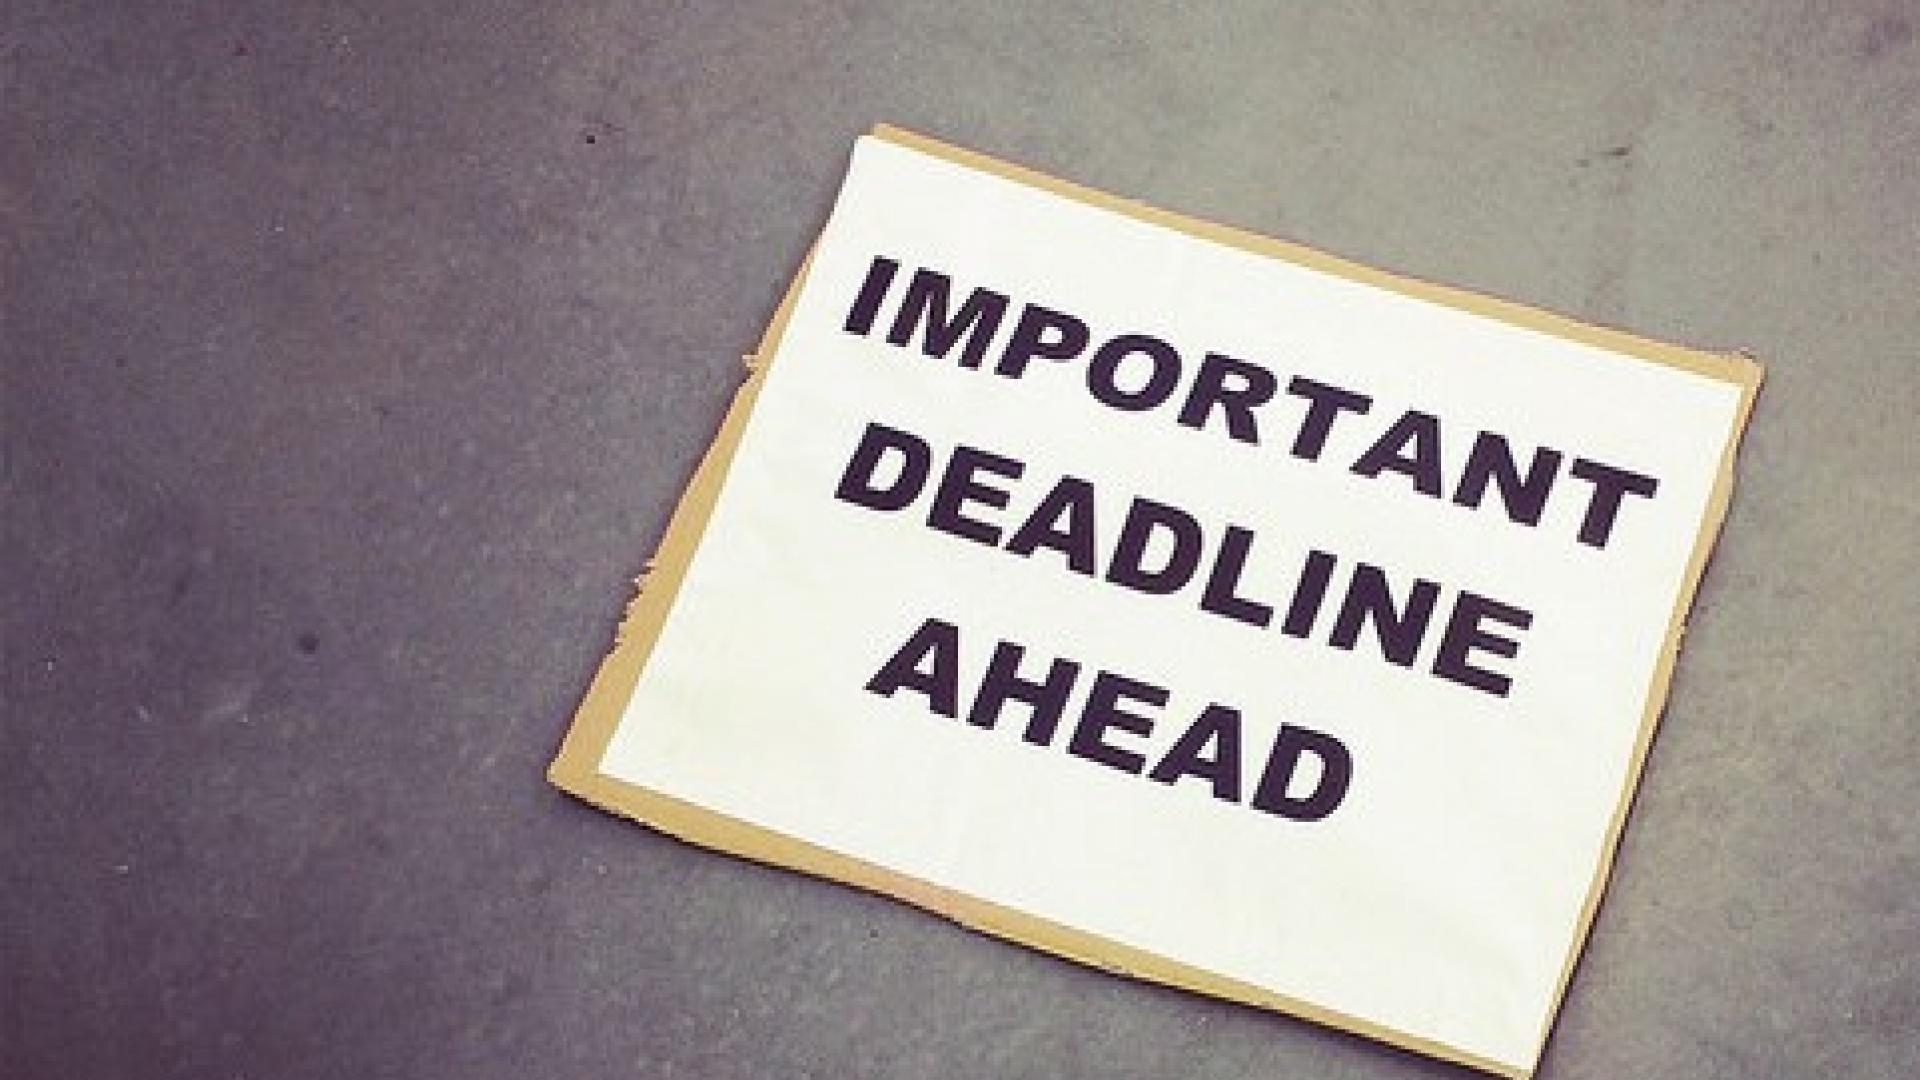 "Photo shows a sign reading: ""Important deadline ahead"""